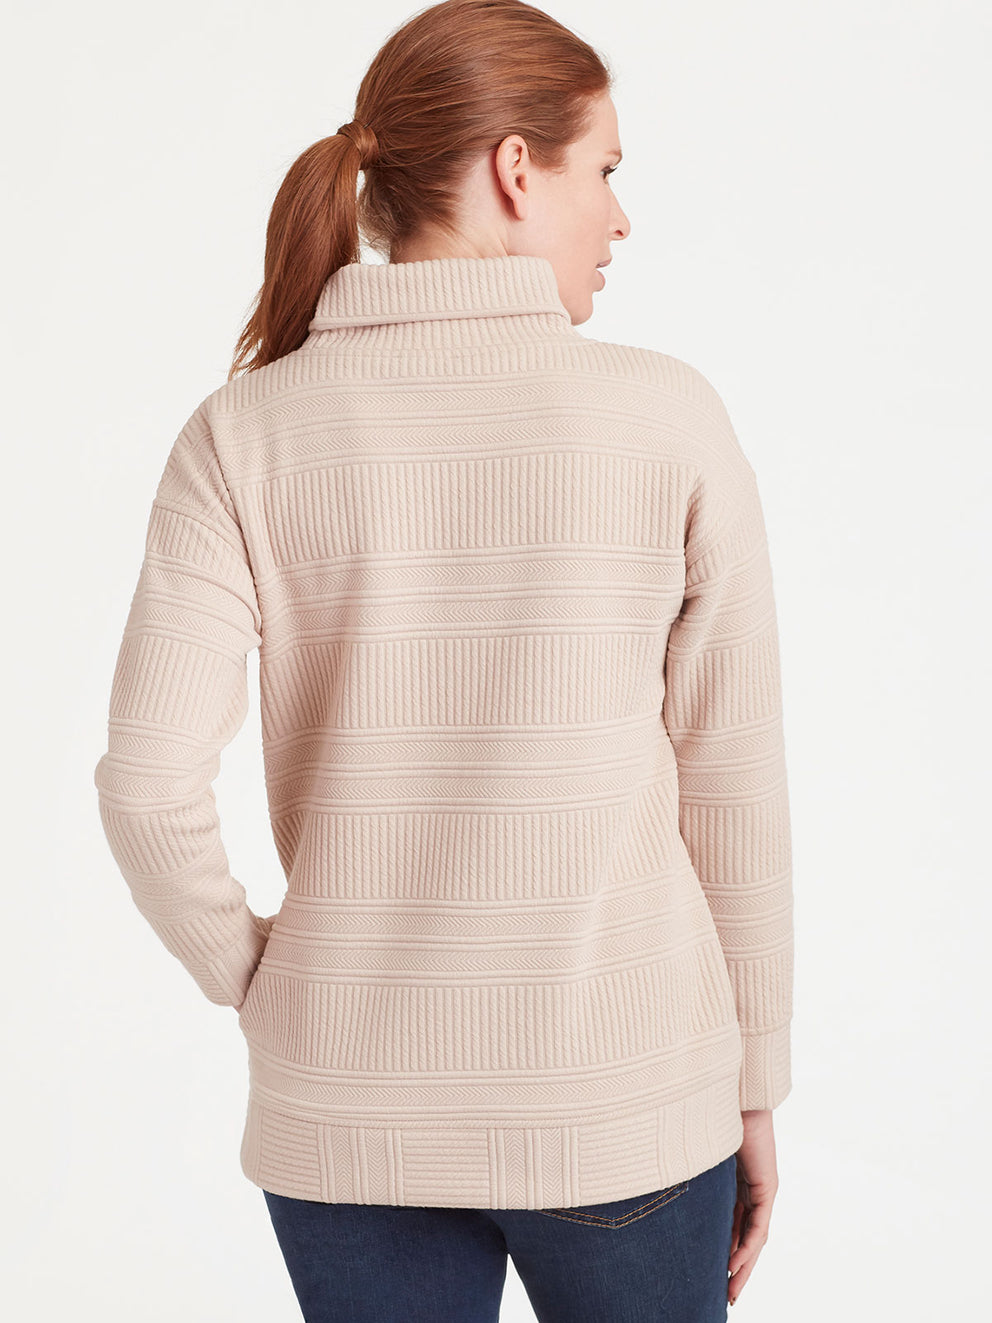 The Jones New York Quilted Turtleneck in color Pebble - Image Position 3